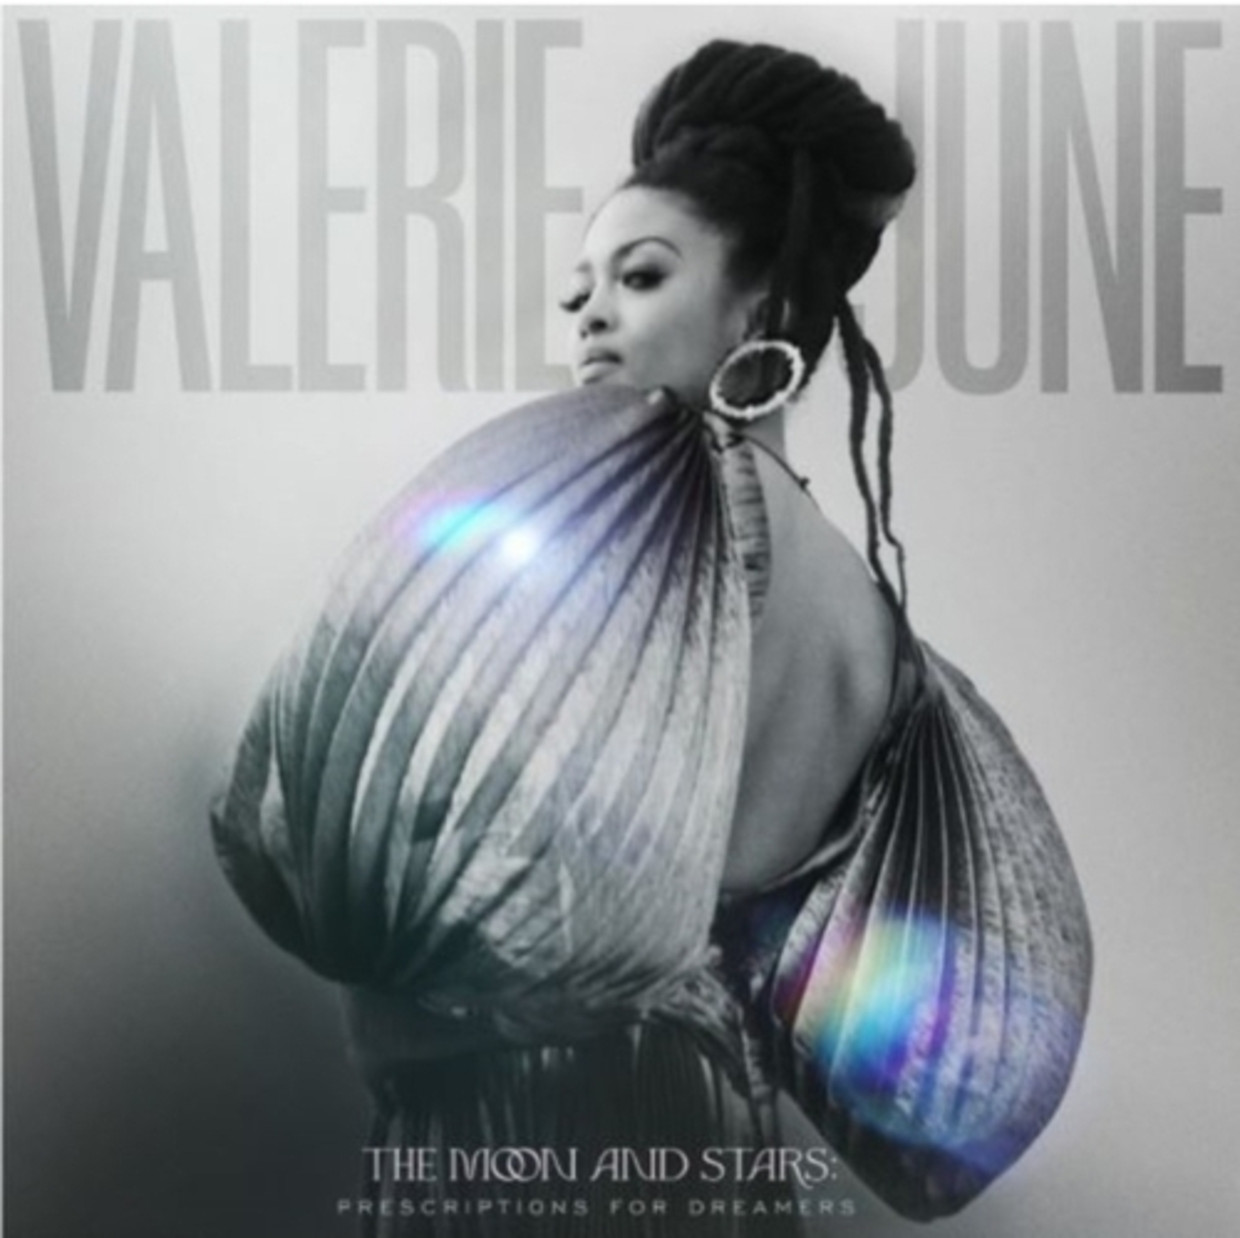 VALERIE JUNE The Moon and Stars: Prescriptions for Dreamers Beeld Humo